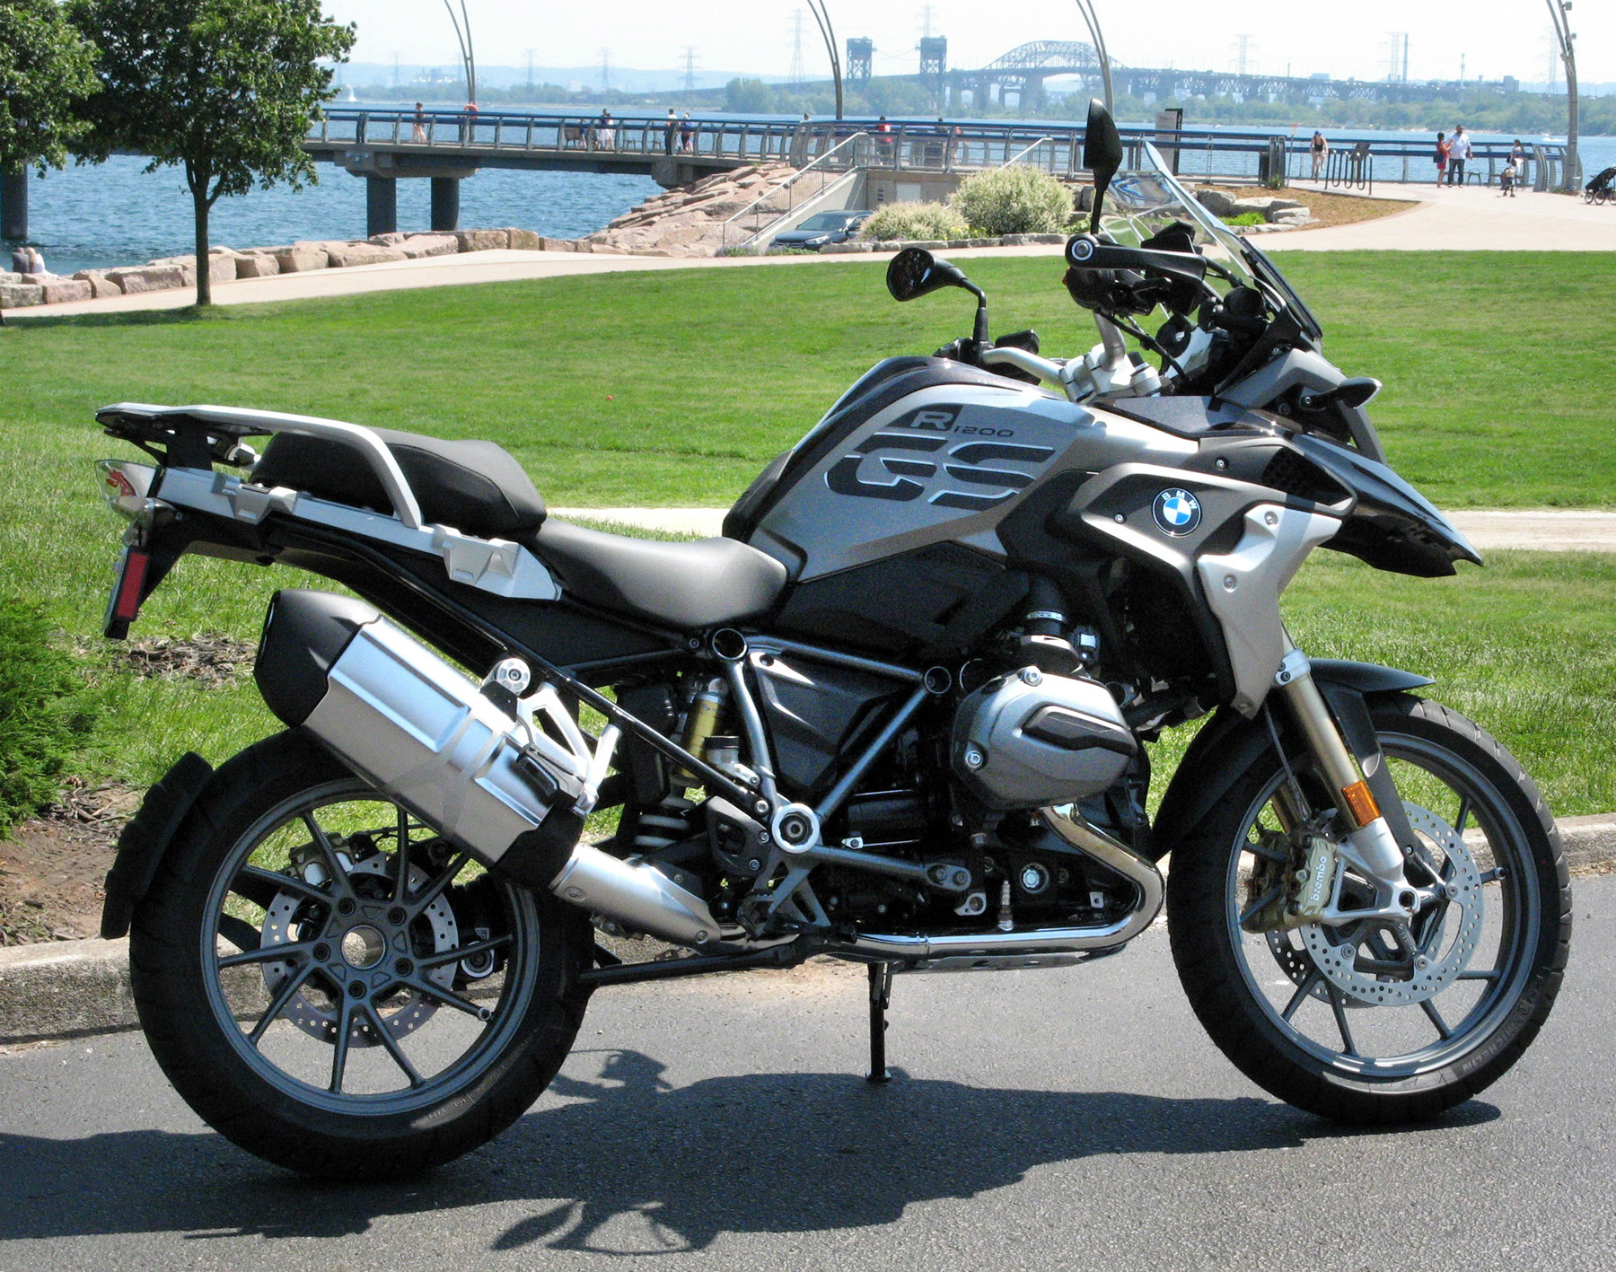 First Class Flight on BMW's R1200GS – WHEELS.ca